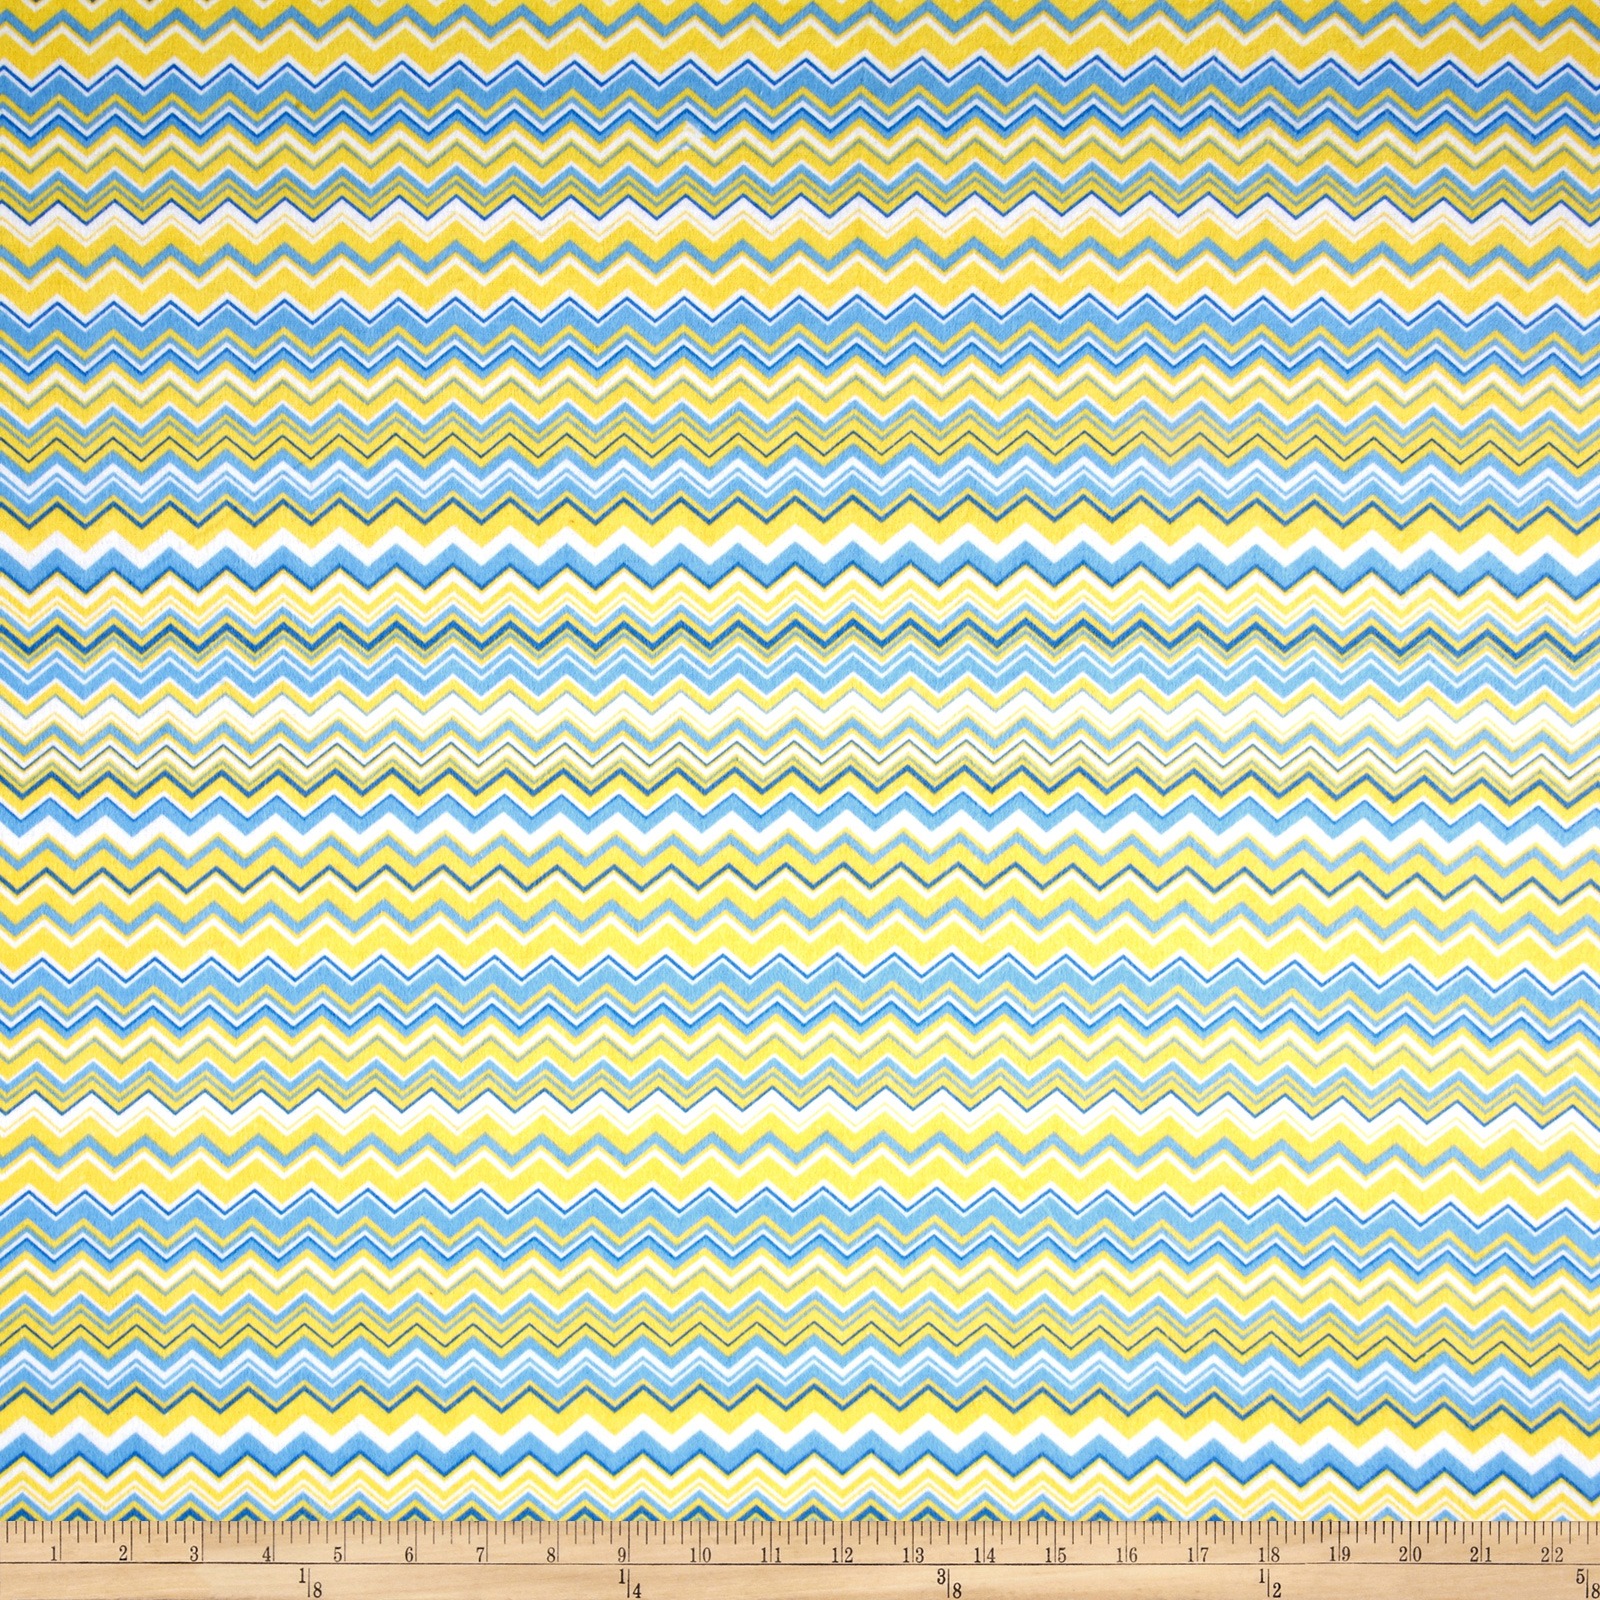 Chevron Flannel Yellow/Blue Fabric